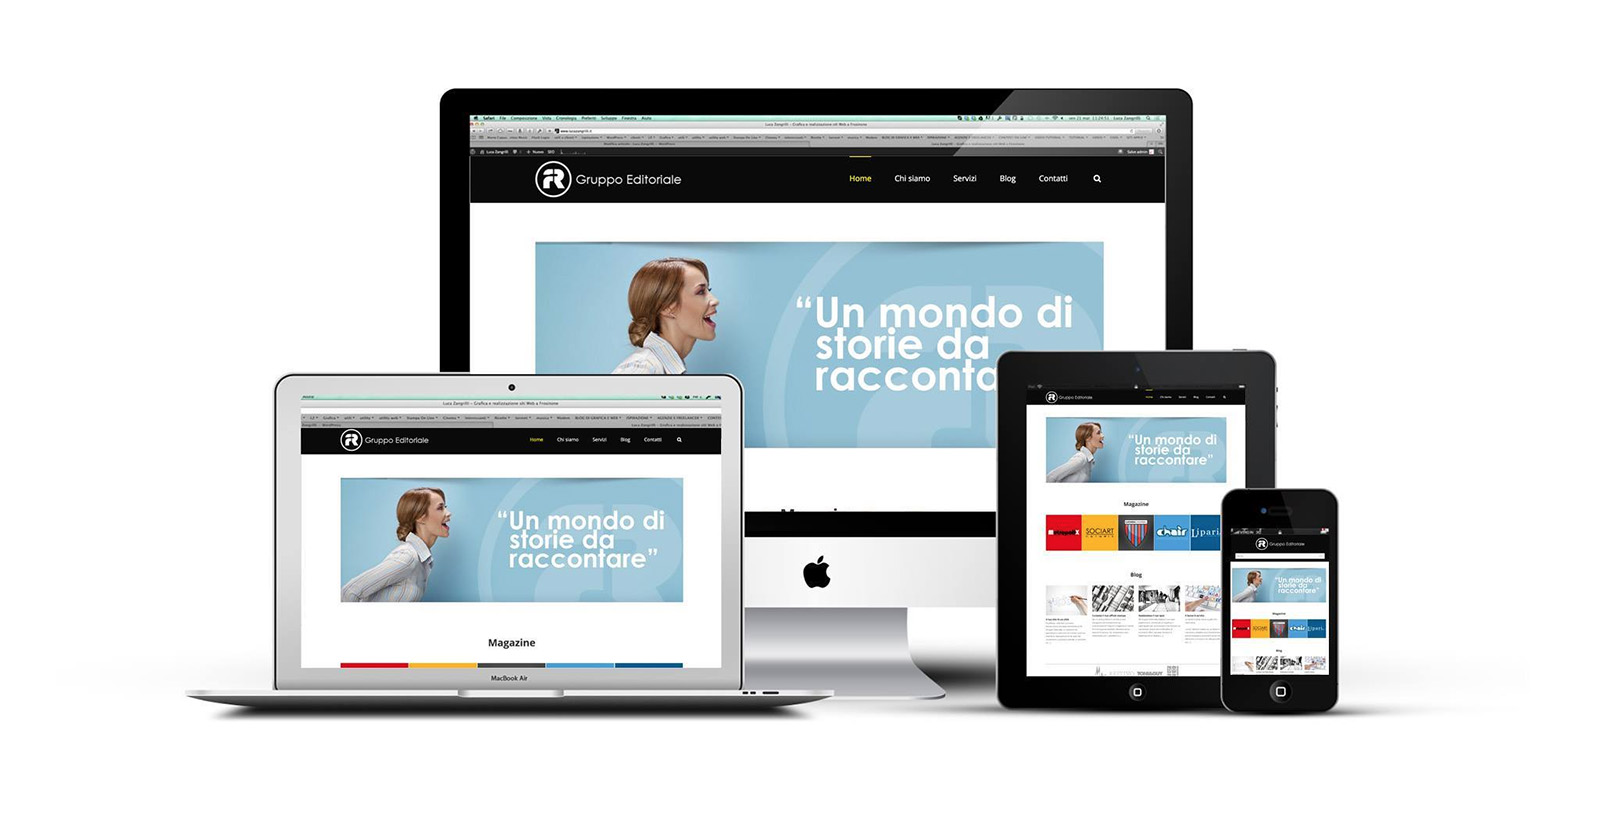 FR Gruppo Editoriale website